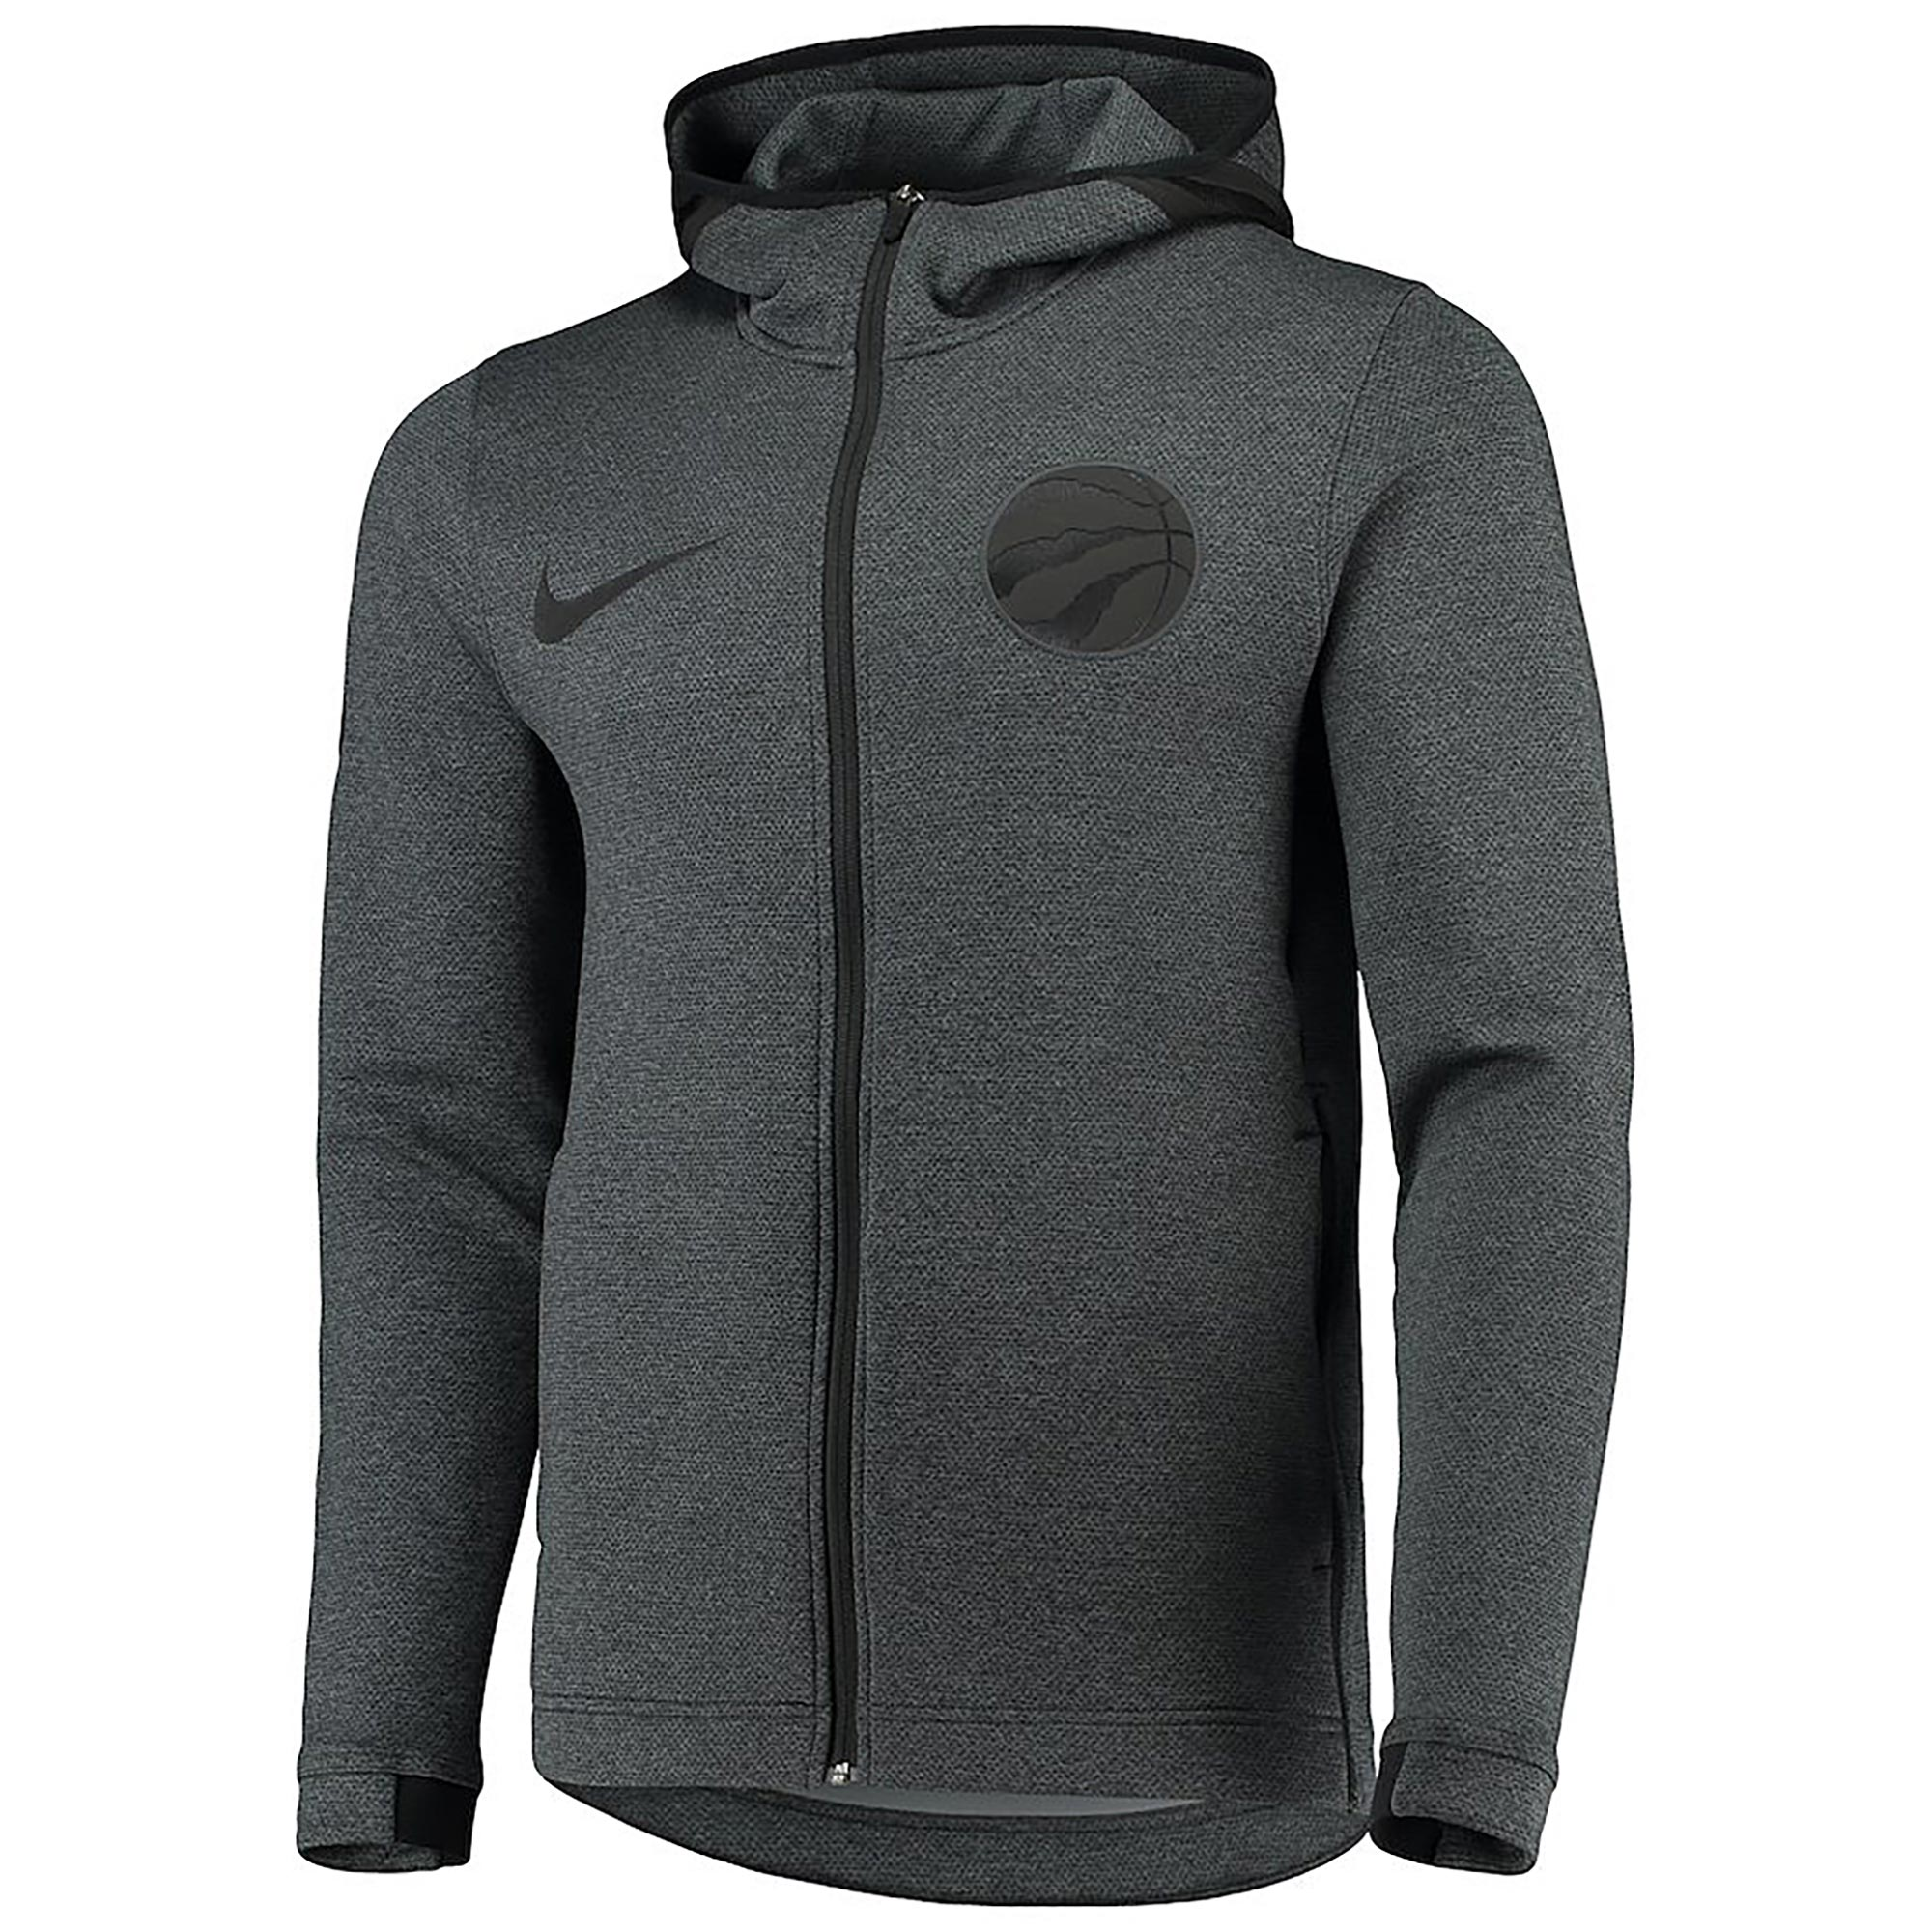 Outerstuff EMEA Ltd / Toronto Raptors Nike Showtime Therma Flex Hoodie - Youth